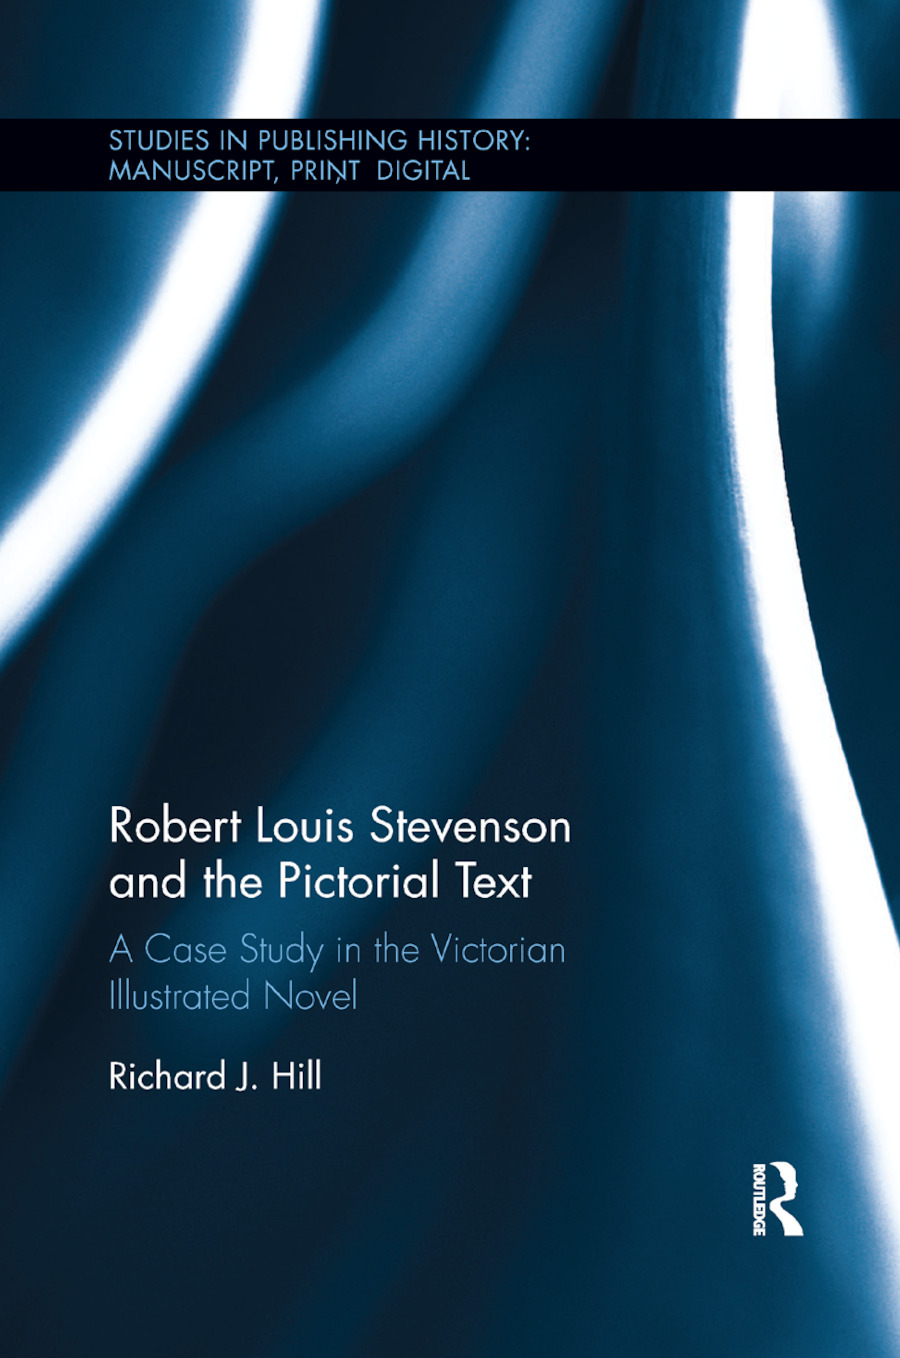 Robert Louis Stevenson and the Pictorial Text